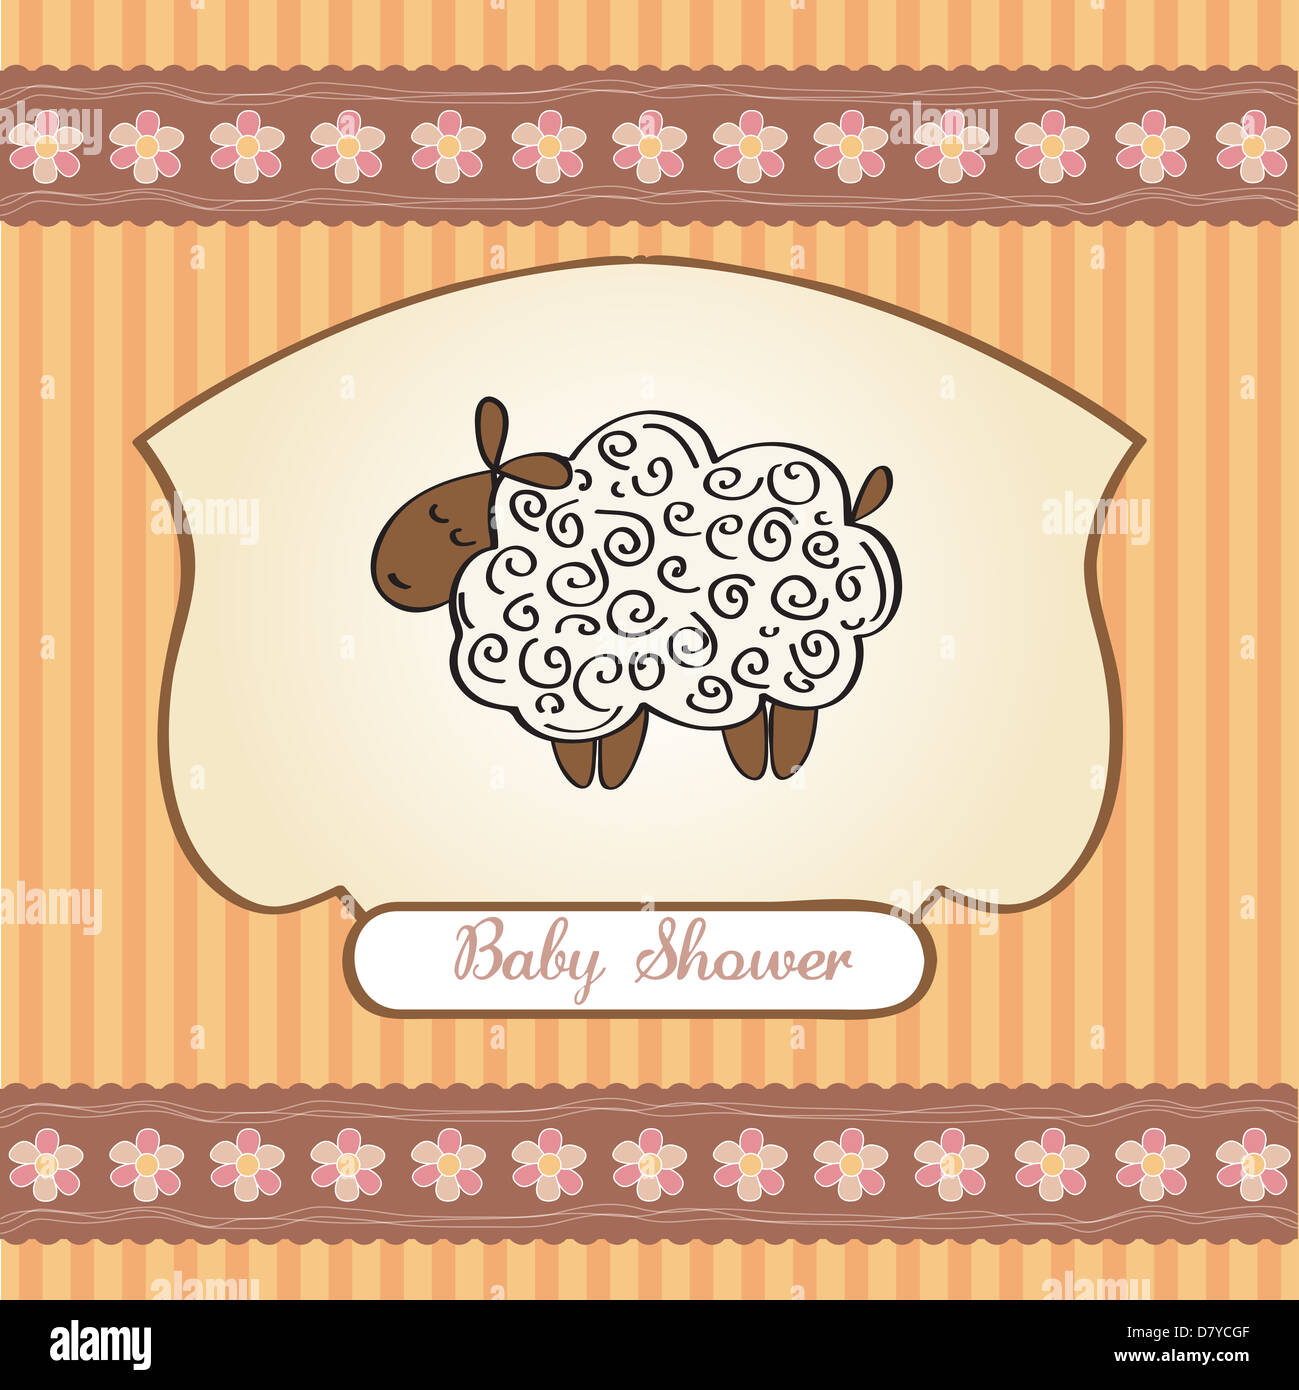 Cute Baby Shower Card With Sheep Vector Illustration Stock Photo